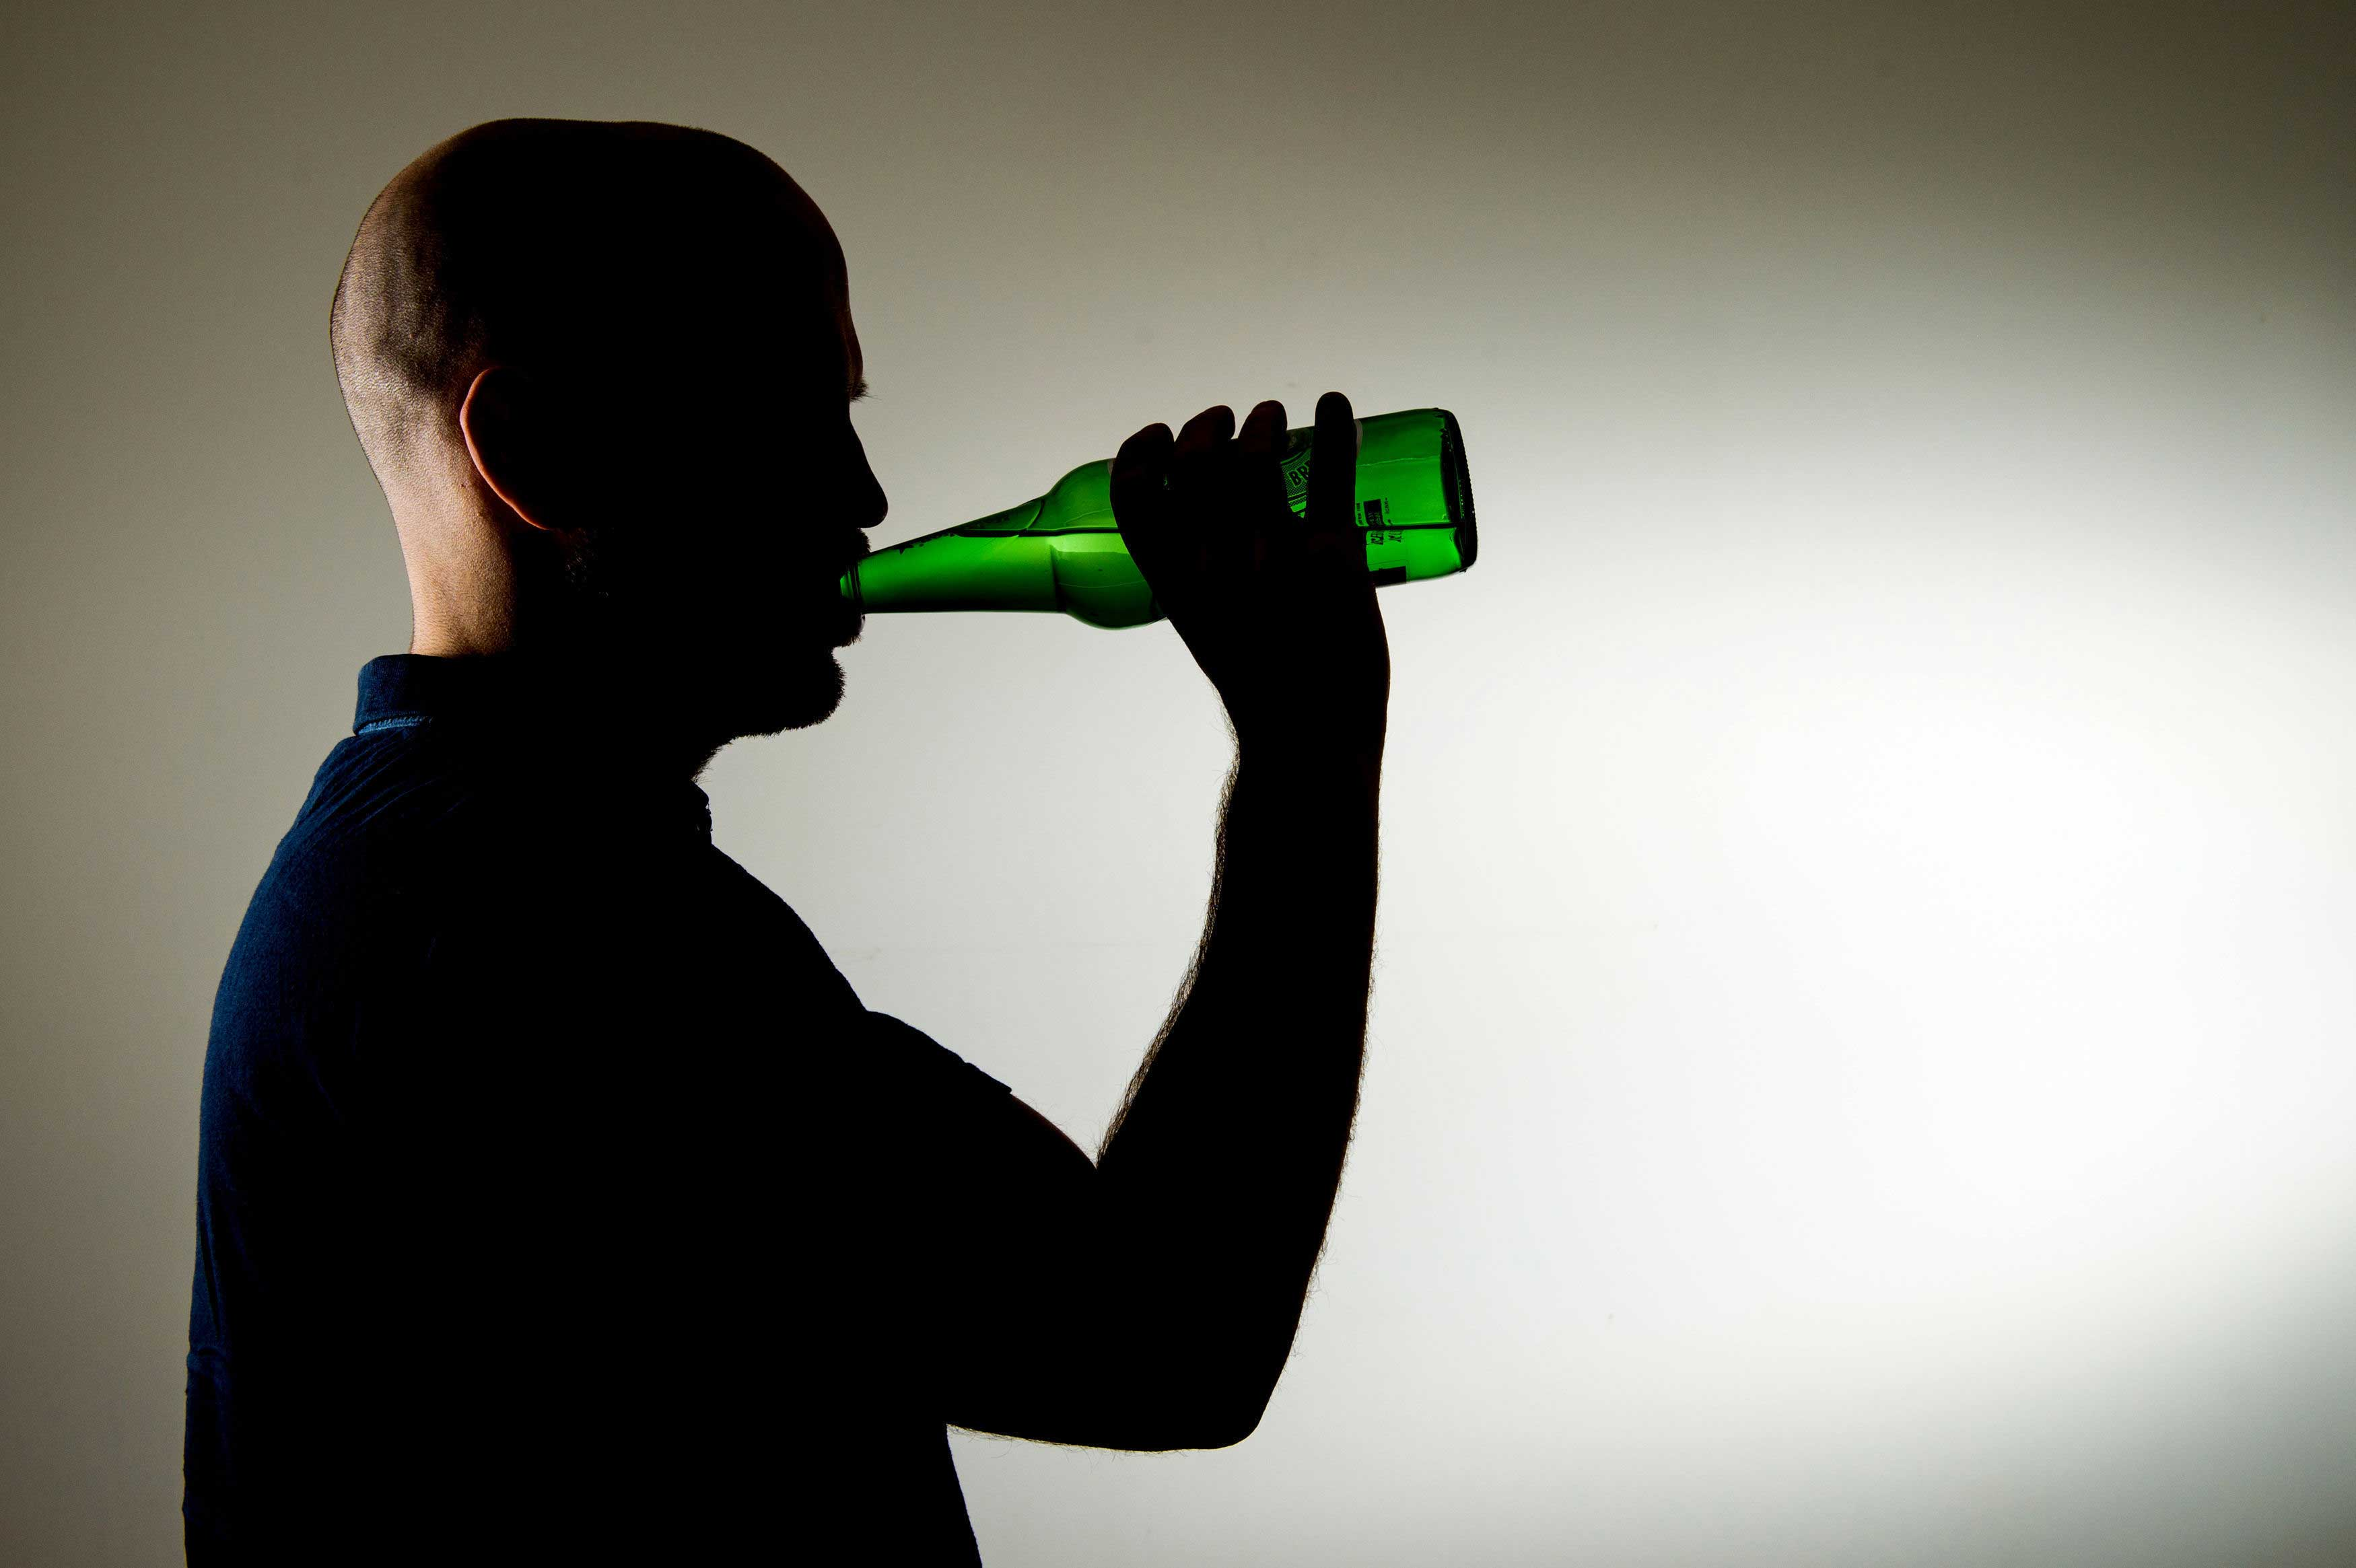 Drinking Alcohol Could Take Years Off Your Life, Study Reveals